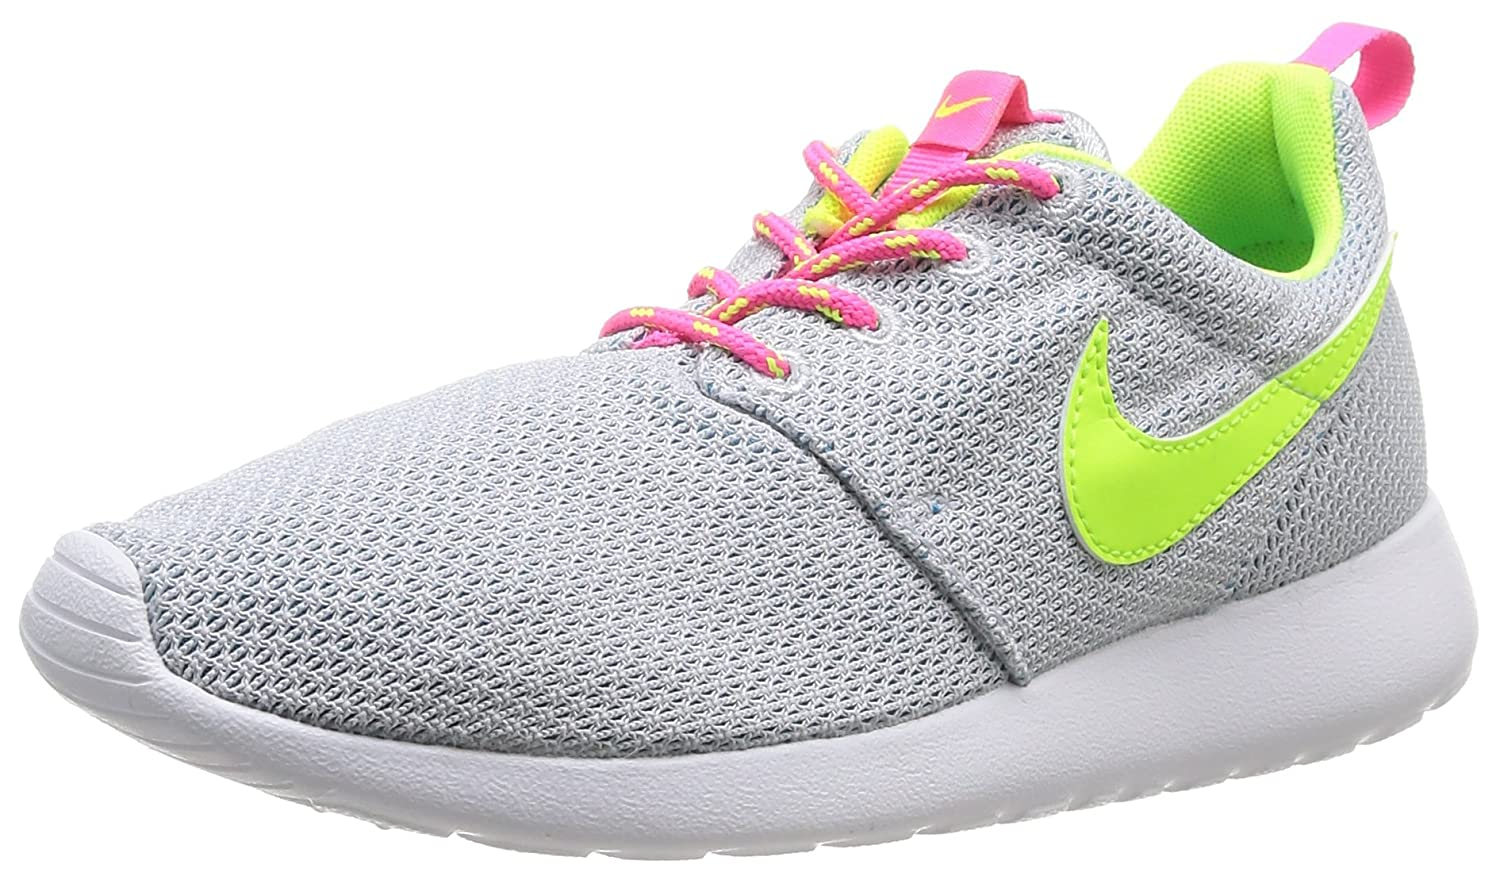 hot sale online 698f4 796c4 Amazon.com   Nike Roshe Run Grey Youths Trainers 5.5Y US   Running